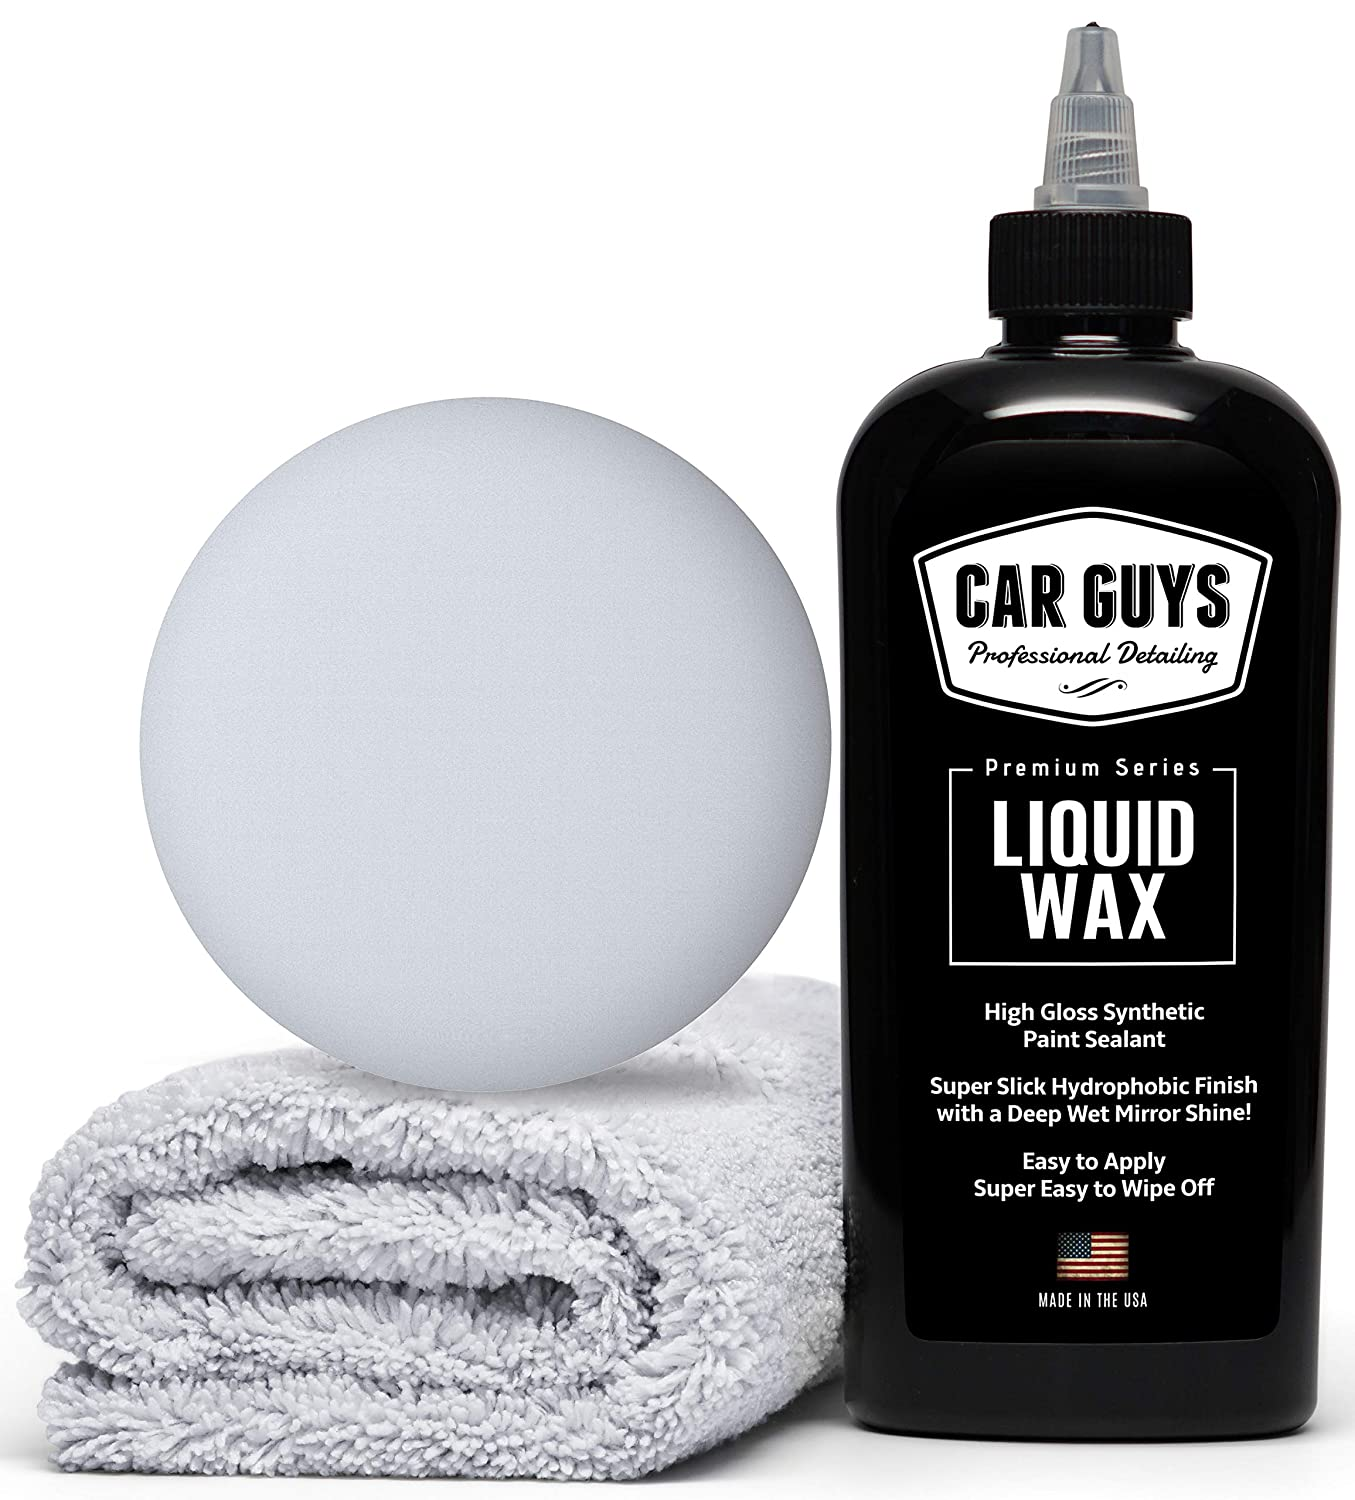 CarGuys Liquid Wax - The Ultimate Car Wax Shine with Polymer Paint Sealant Protection! - 8 oz Kit